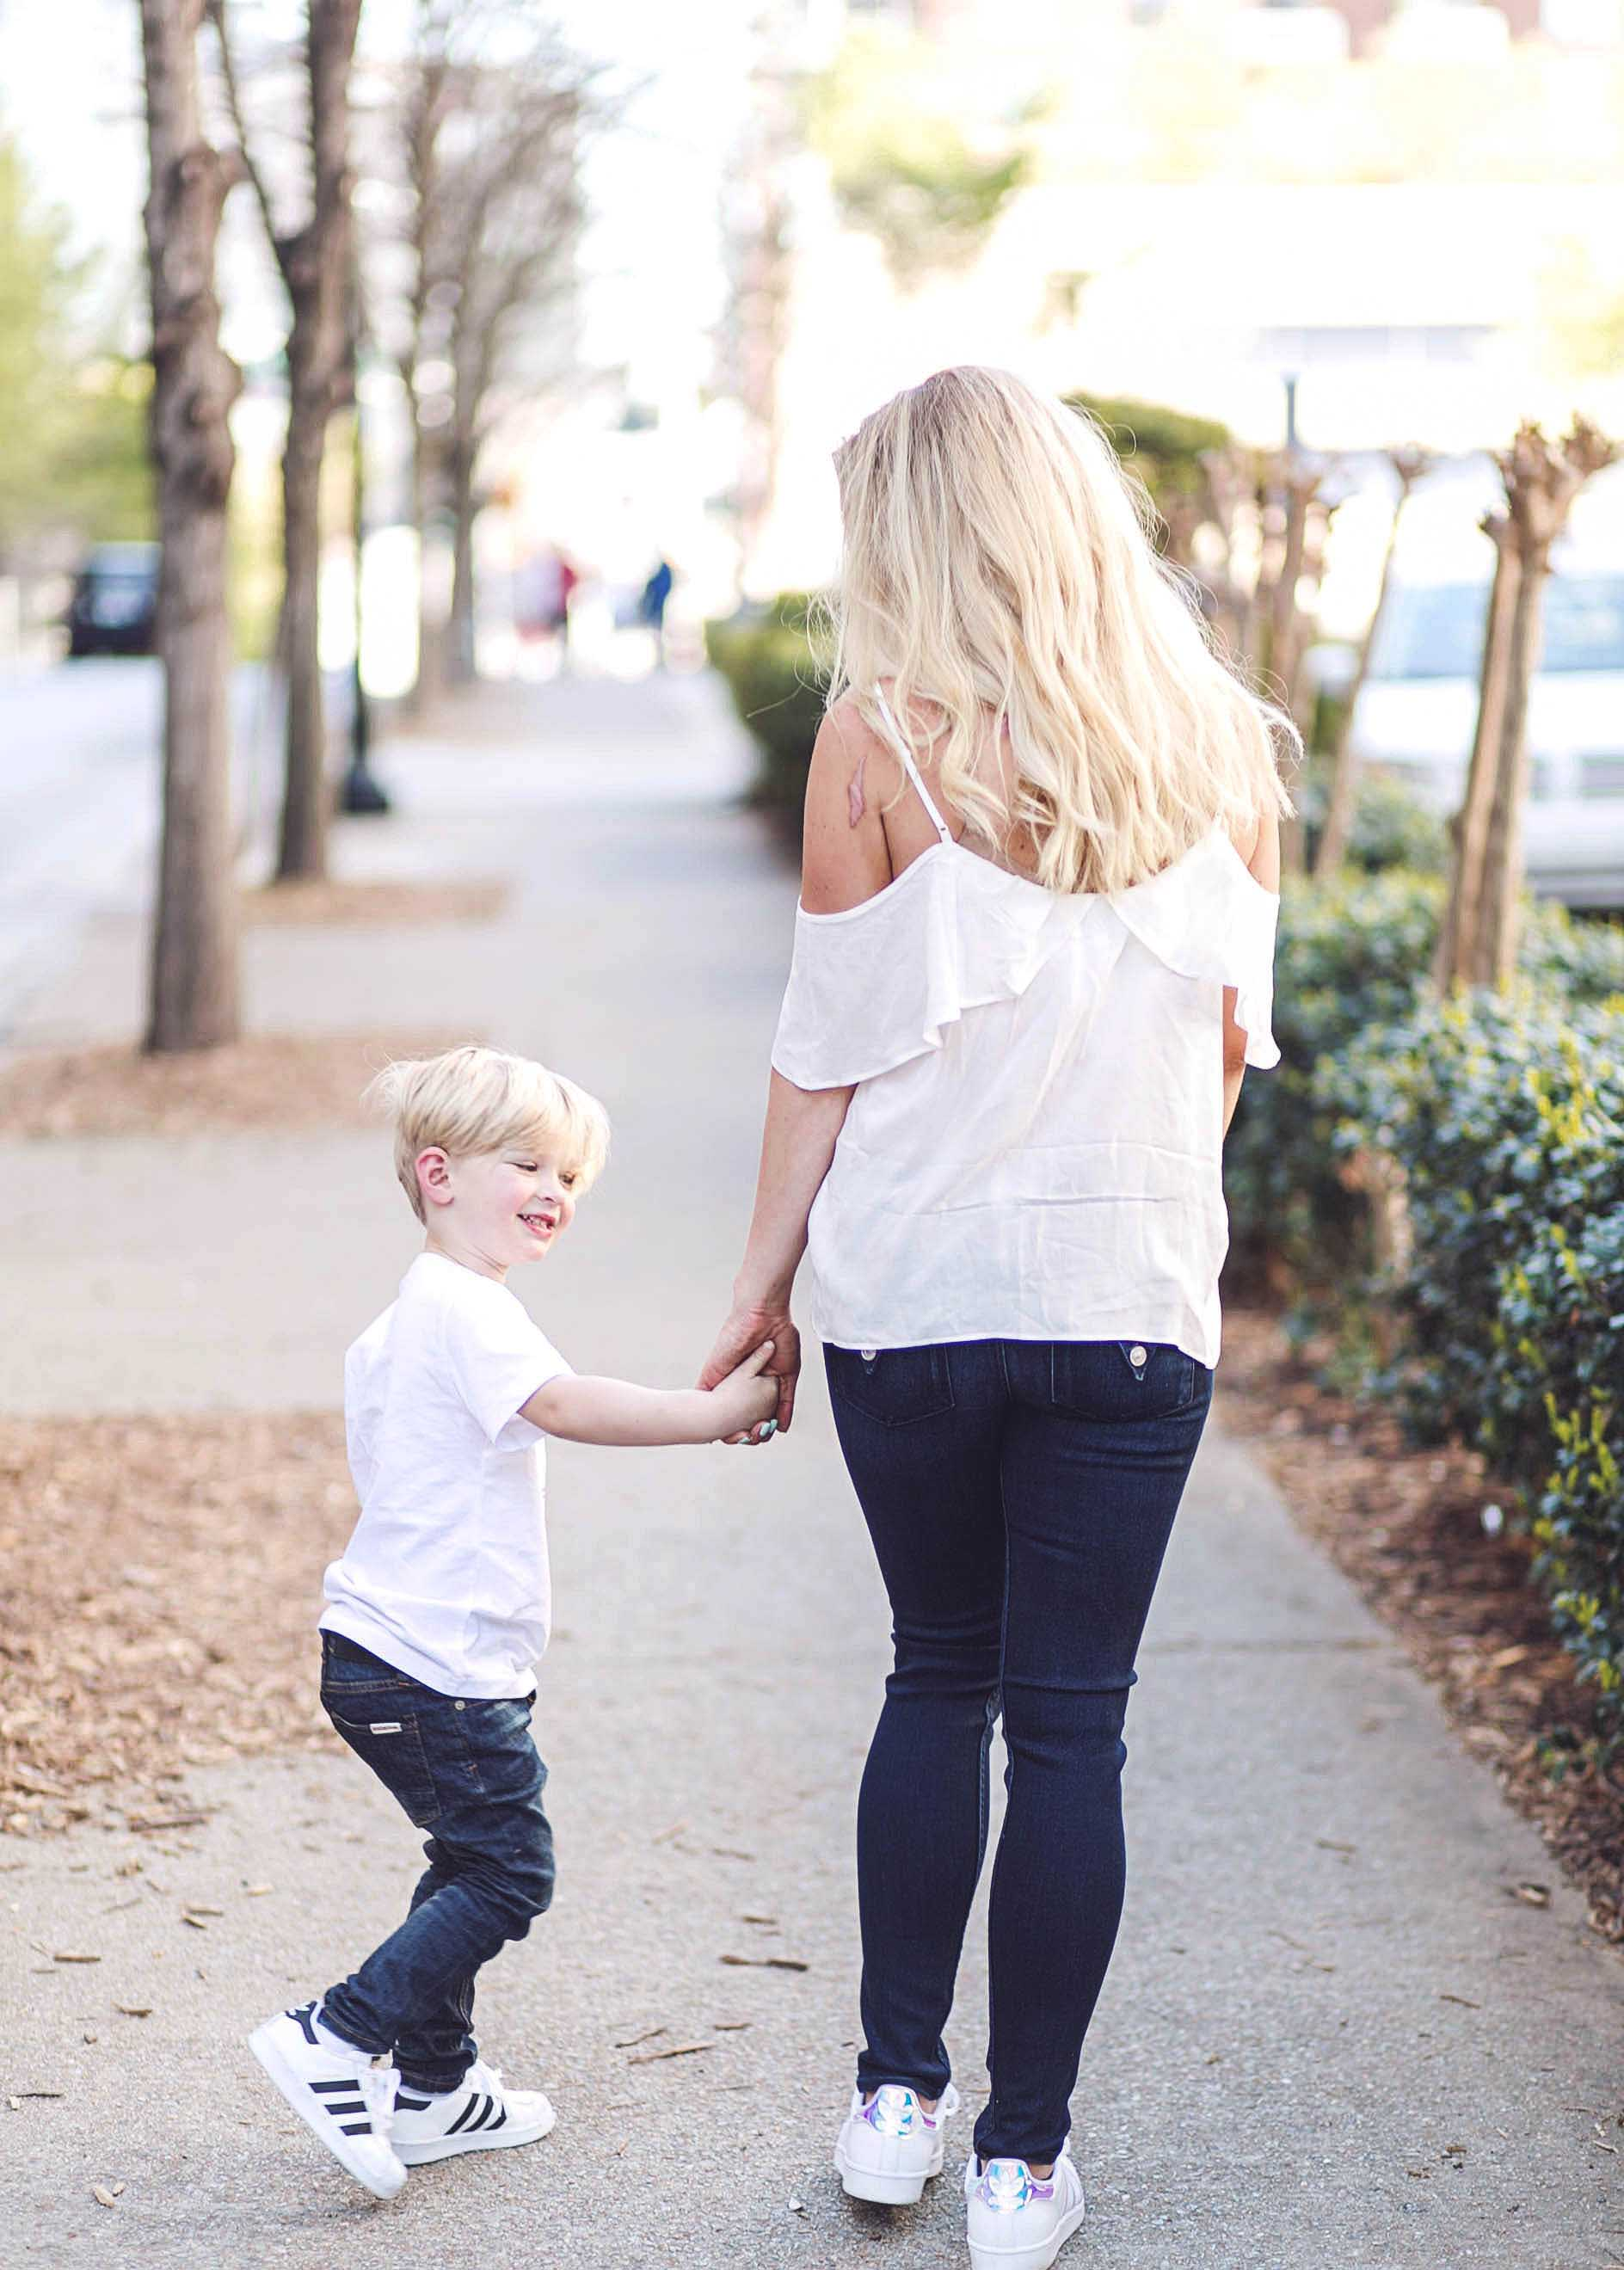 06187d39f4fd8 ... Matching Mother Son Outfits with Zappos by Atlanta fashion blogger  Jessica from Happily Hughes